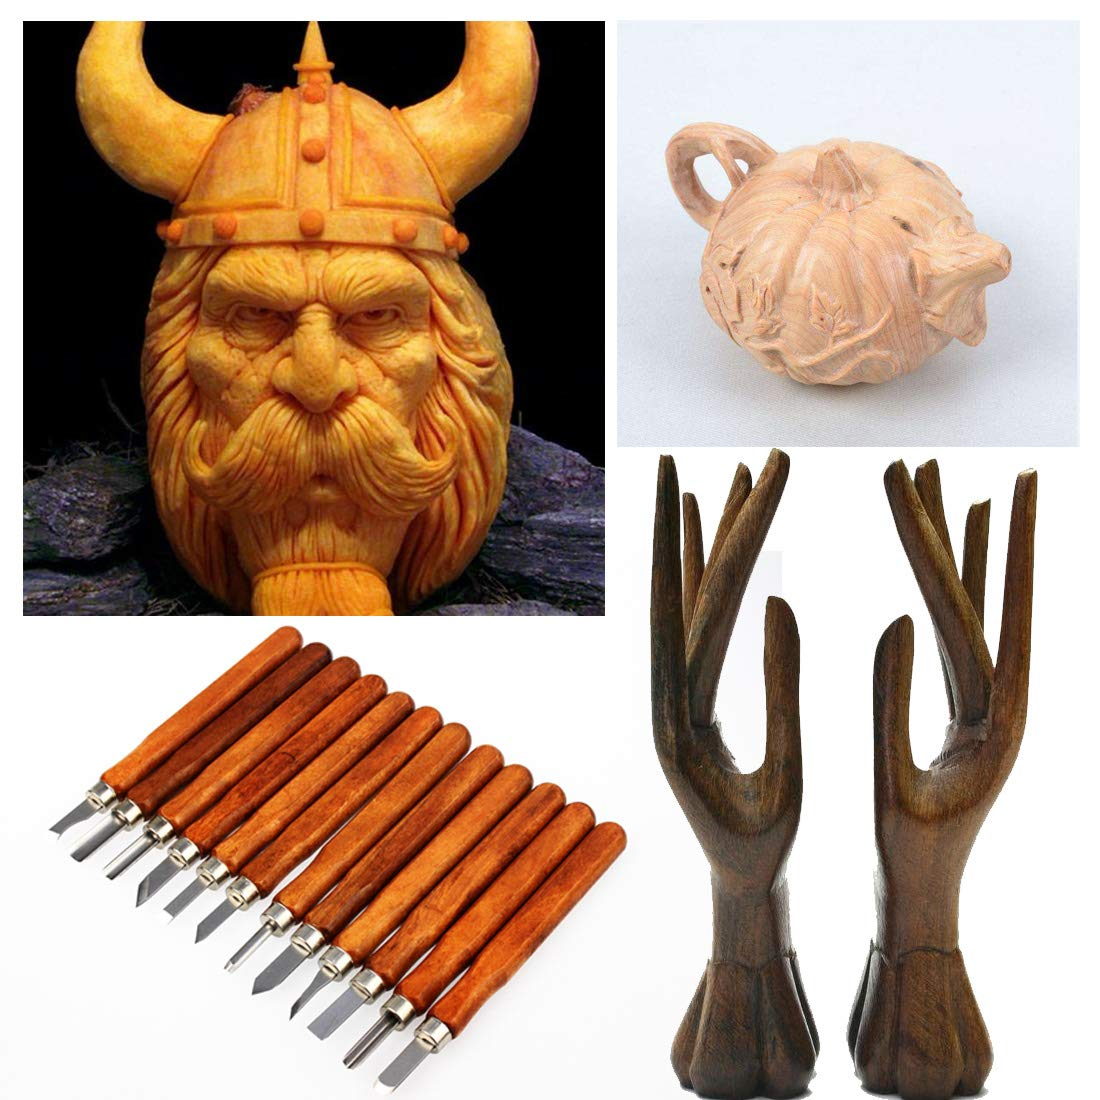 Poualss 12 Pieces Wood Carving Tools Knife Kits with 3 Pieces Whetstones and 1 Piece Brush for DIY Beginners and Experienced Carvers for Wood, Pumpkin, Soap, Rubber, Handmade Crafting